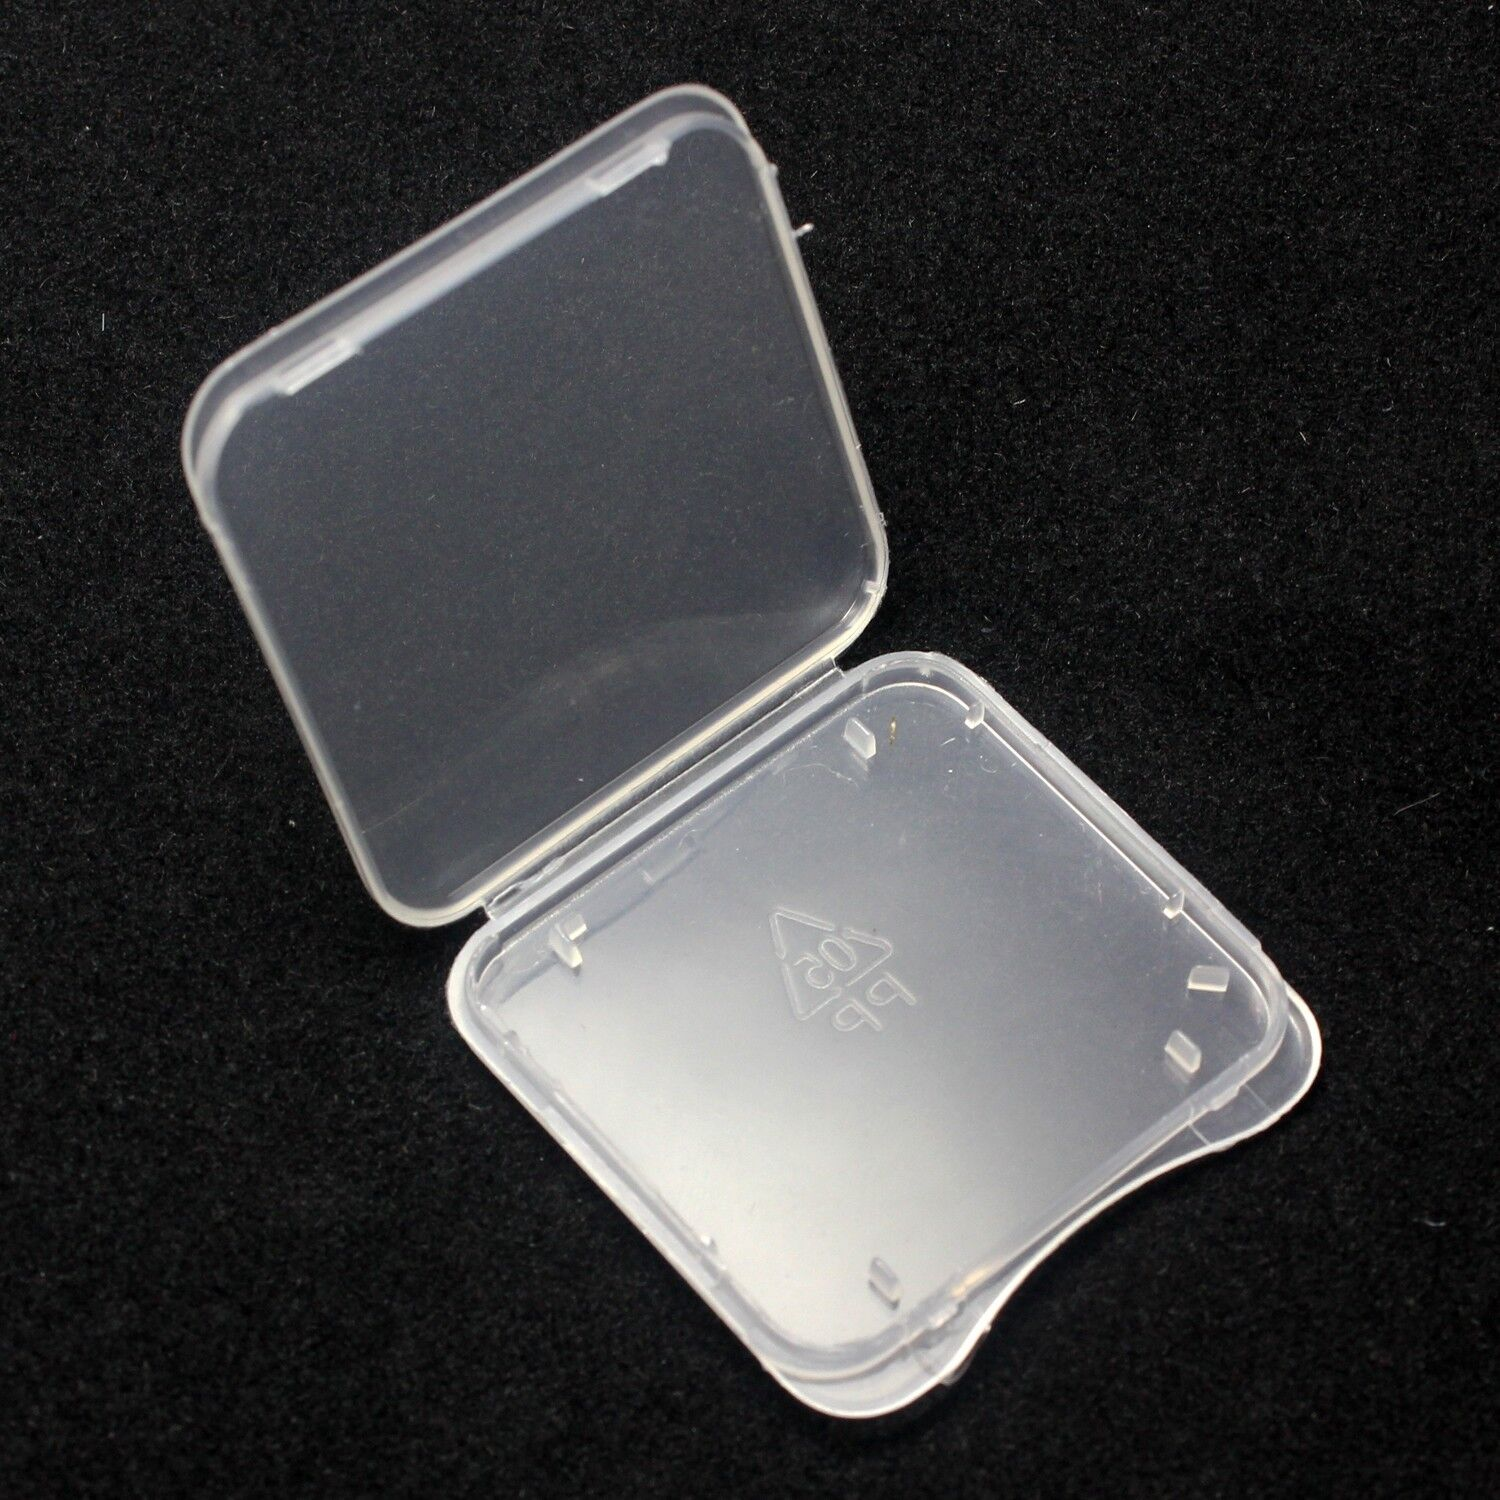 10 pcs 2 in 1 Memory Stick/SD Card Protect Plastic Case Holder, Jewel Cases